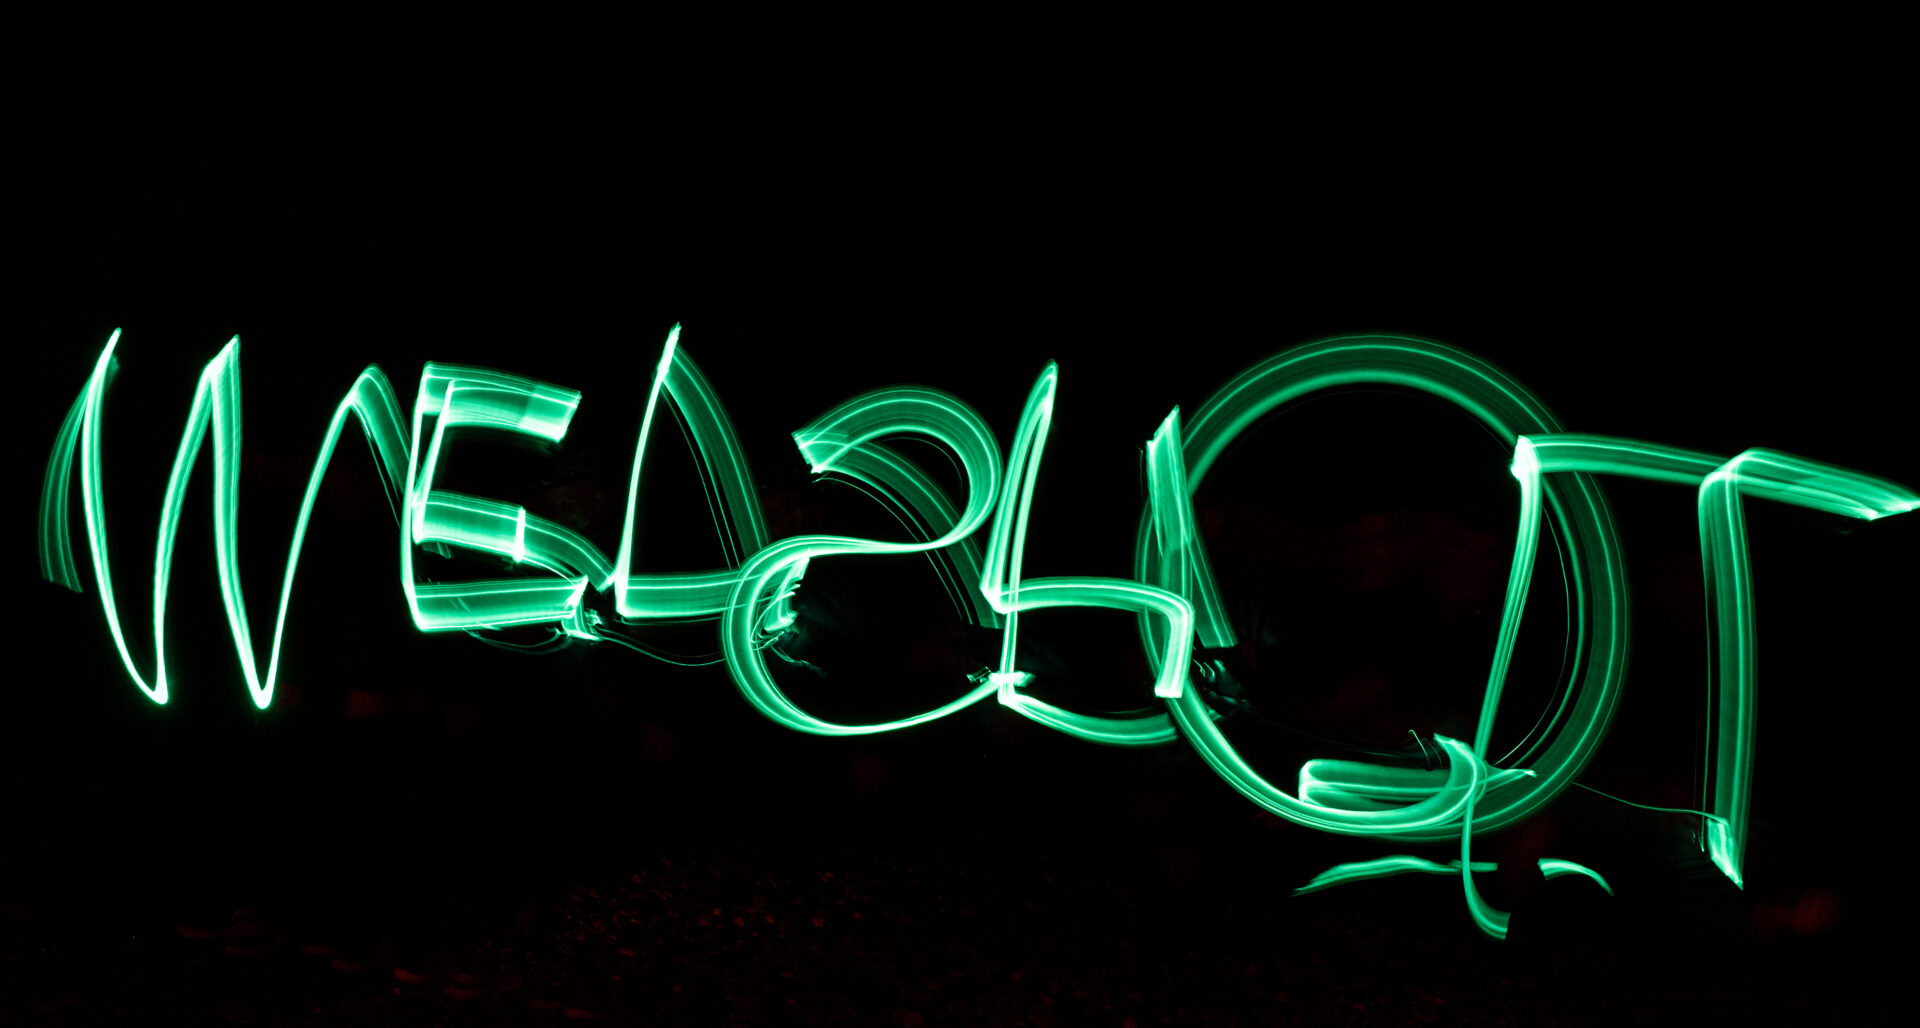 Photo of a Long Exposure with the words Welshot written with a green torch - Taken on a Welshot Photographic Workshop in North wales